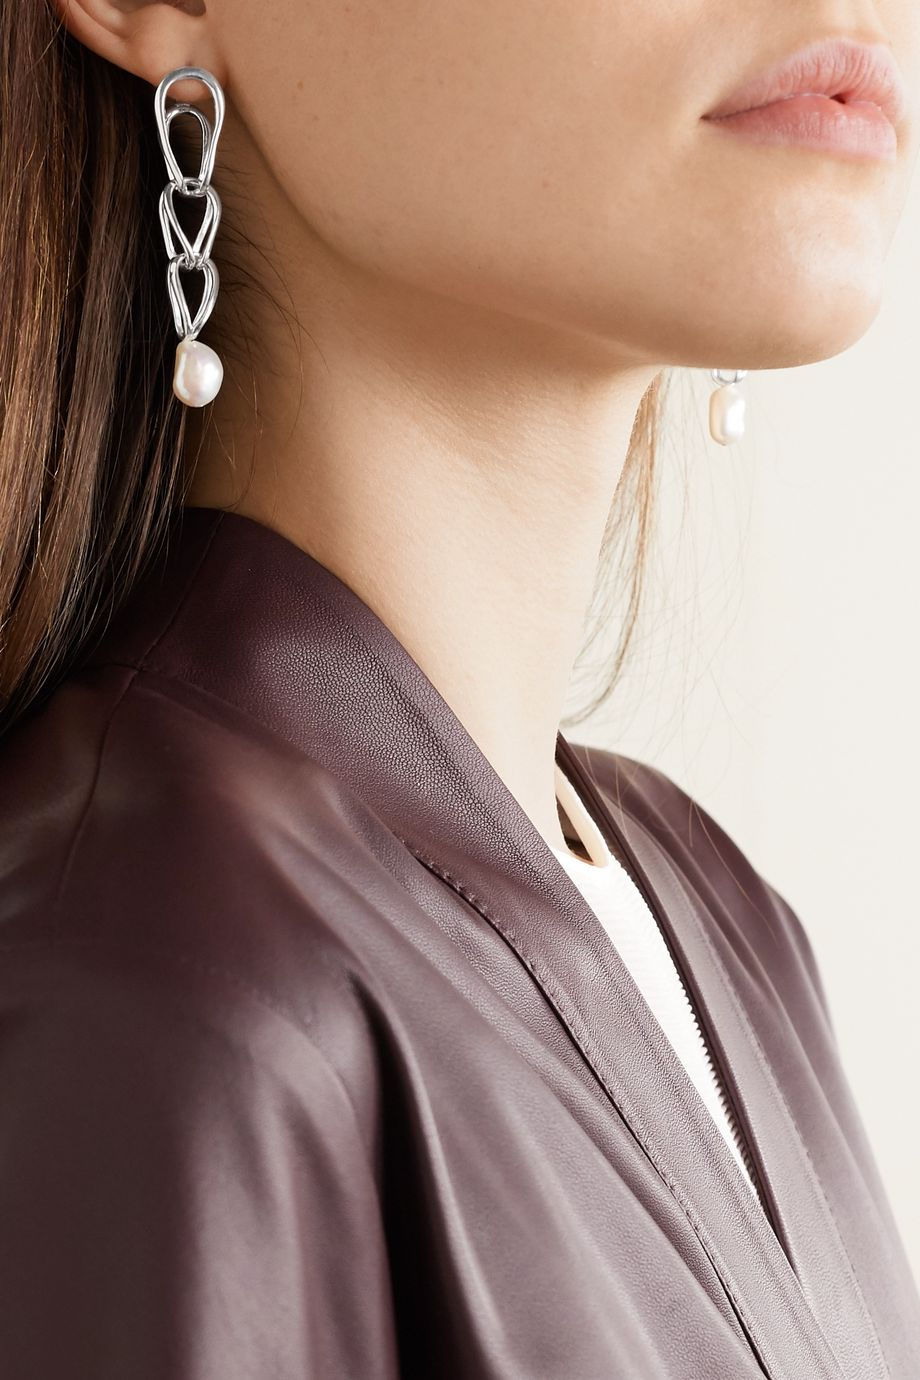 Nathalie Schreckenberg Lua silver pearl earrings